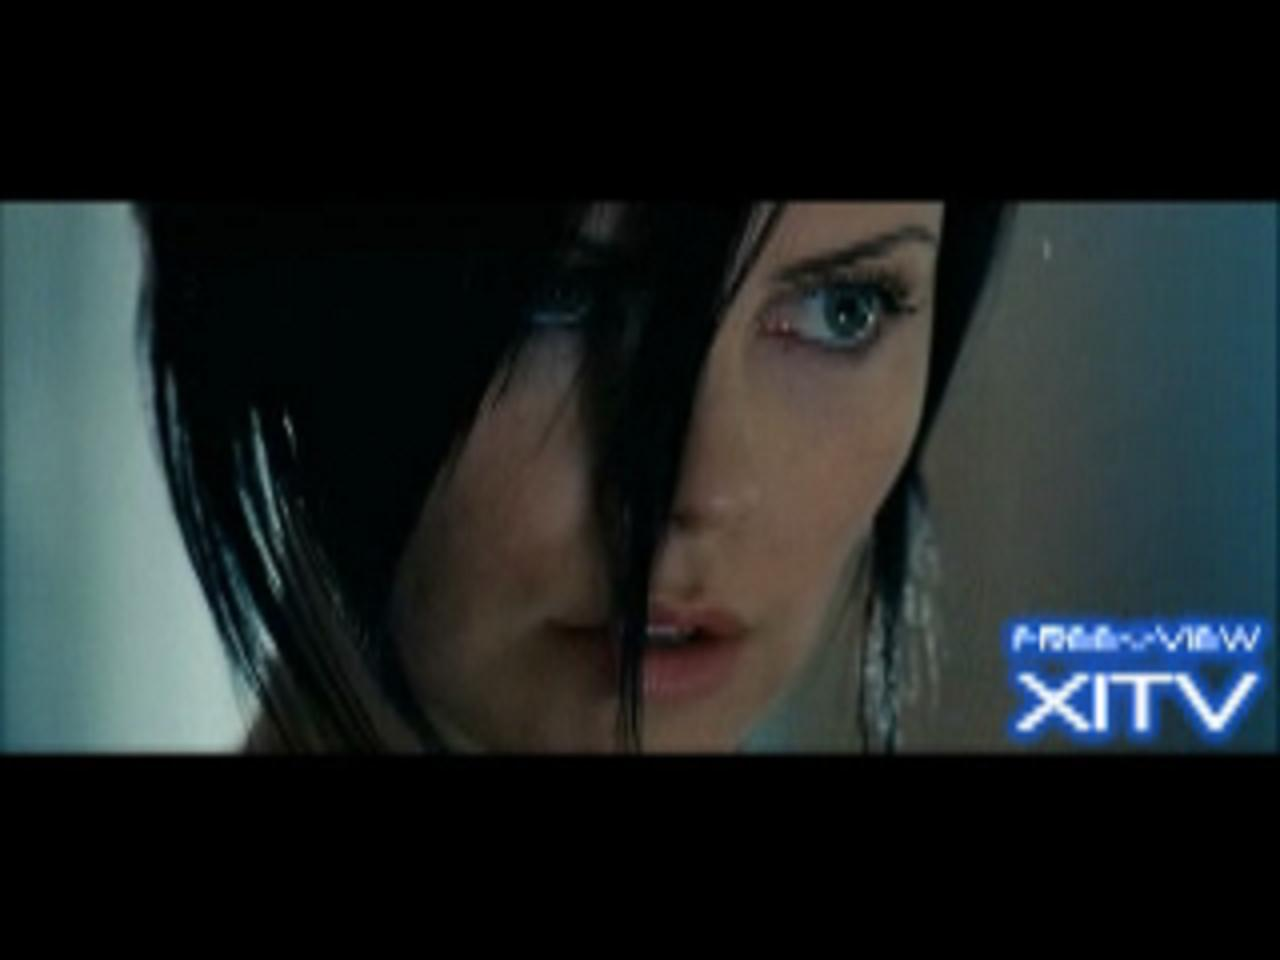 Watch Now! XITV FREE <> VIEW™ Aeon Flux! Starring Charlize Theron! XITV Is Must See TV!